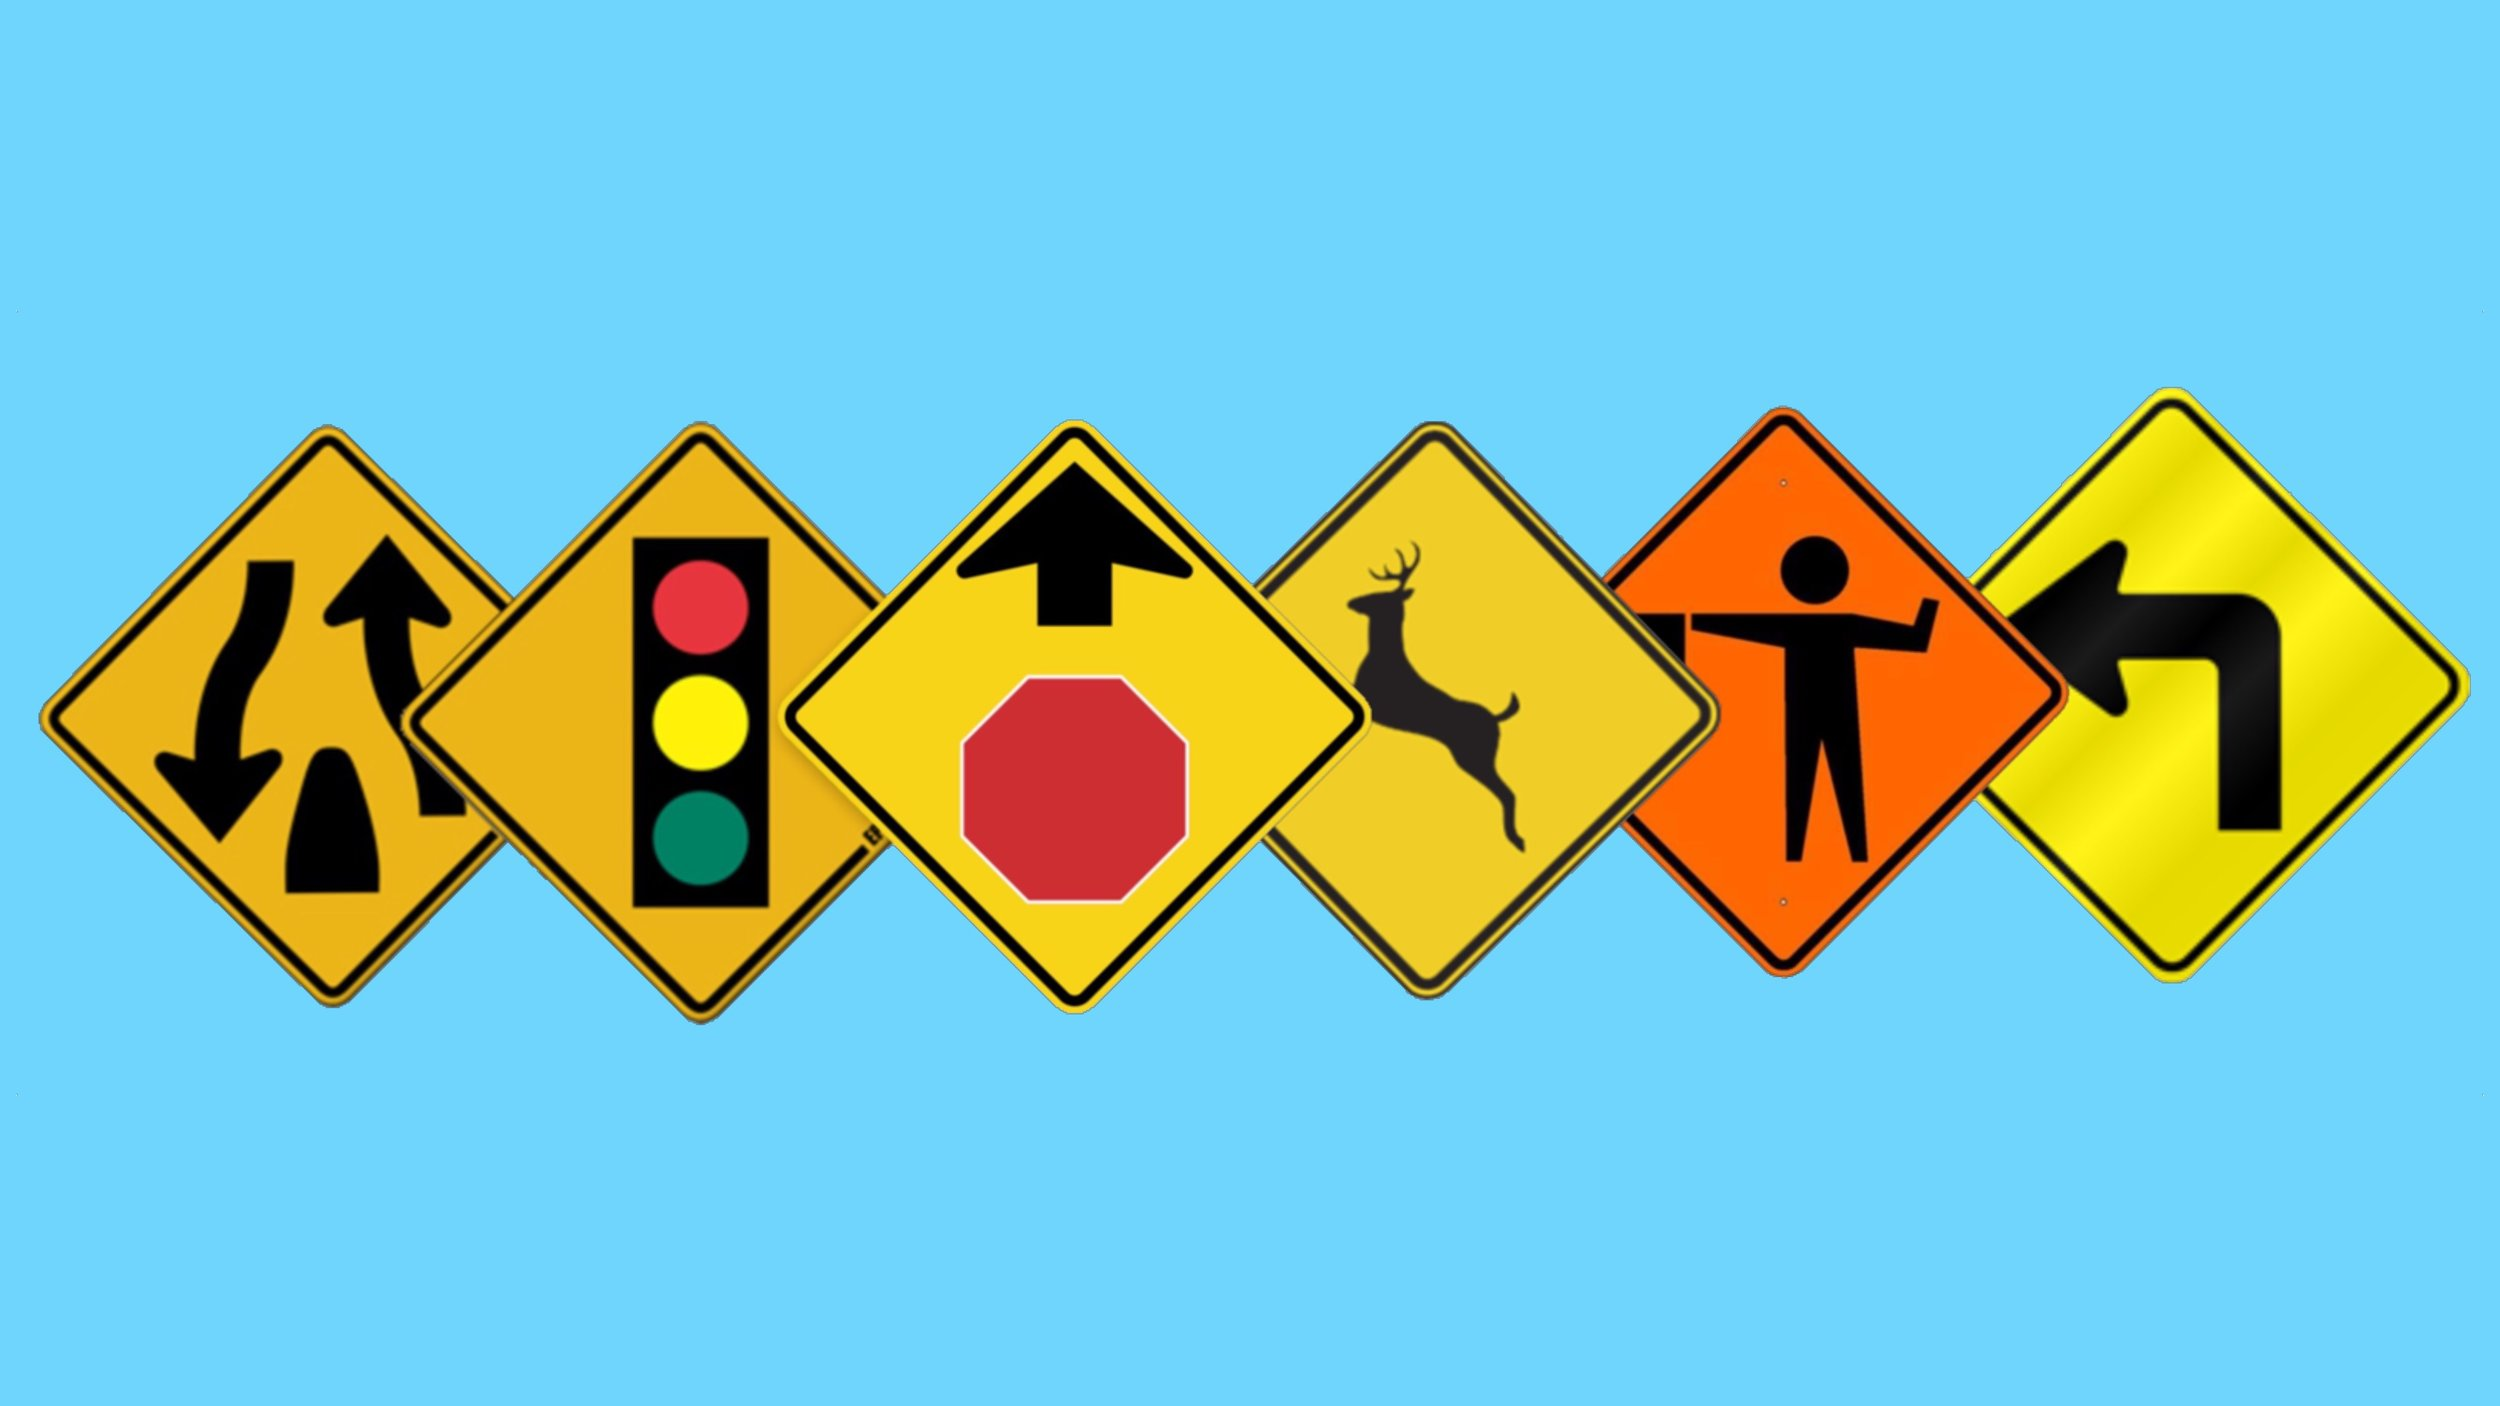 PA DRIVER'S EDUCATION COURSE - Required to Receive a Certificate of Complete